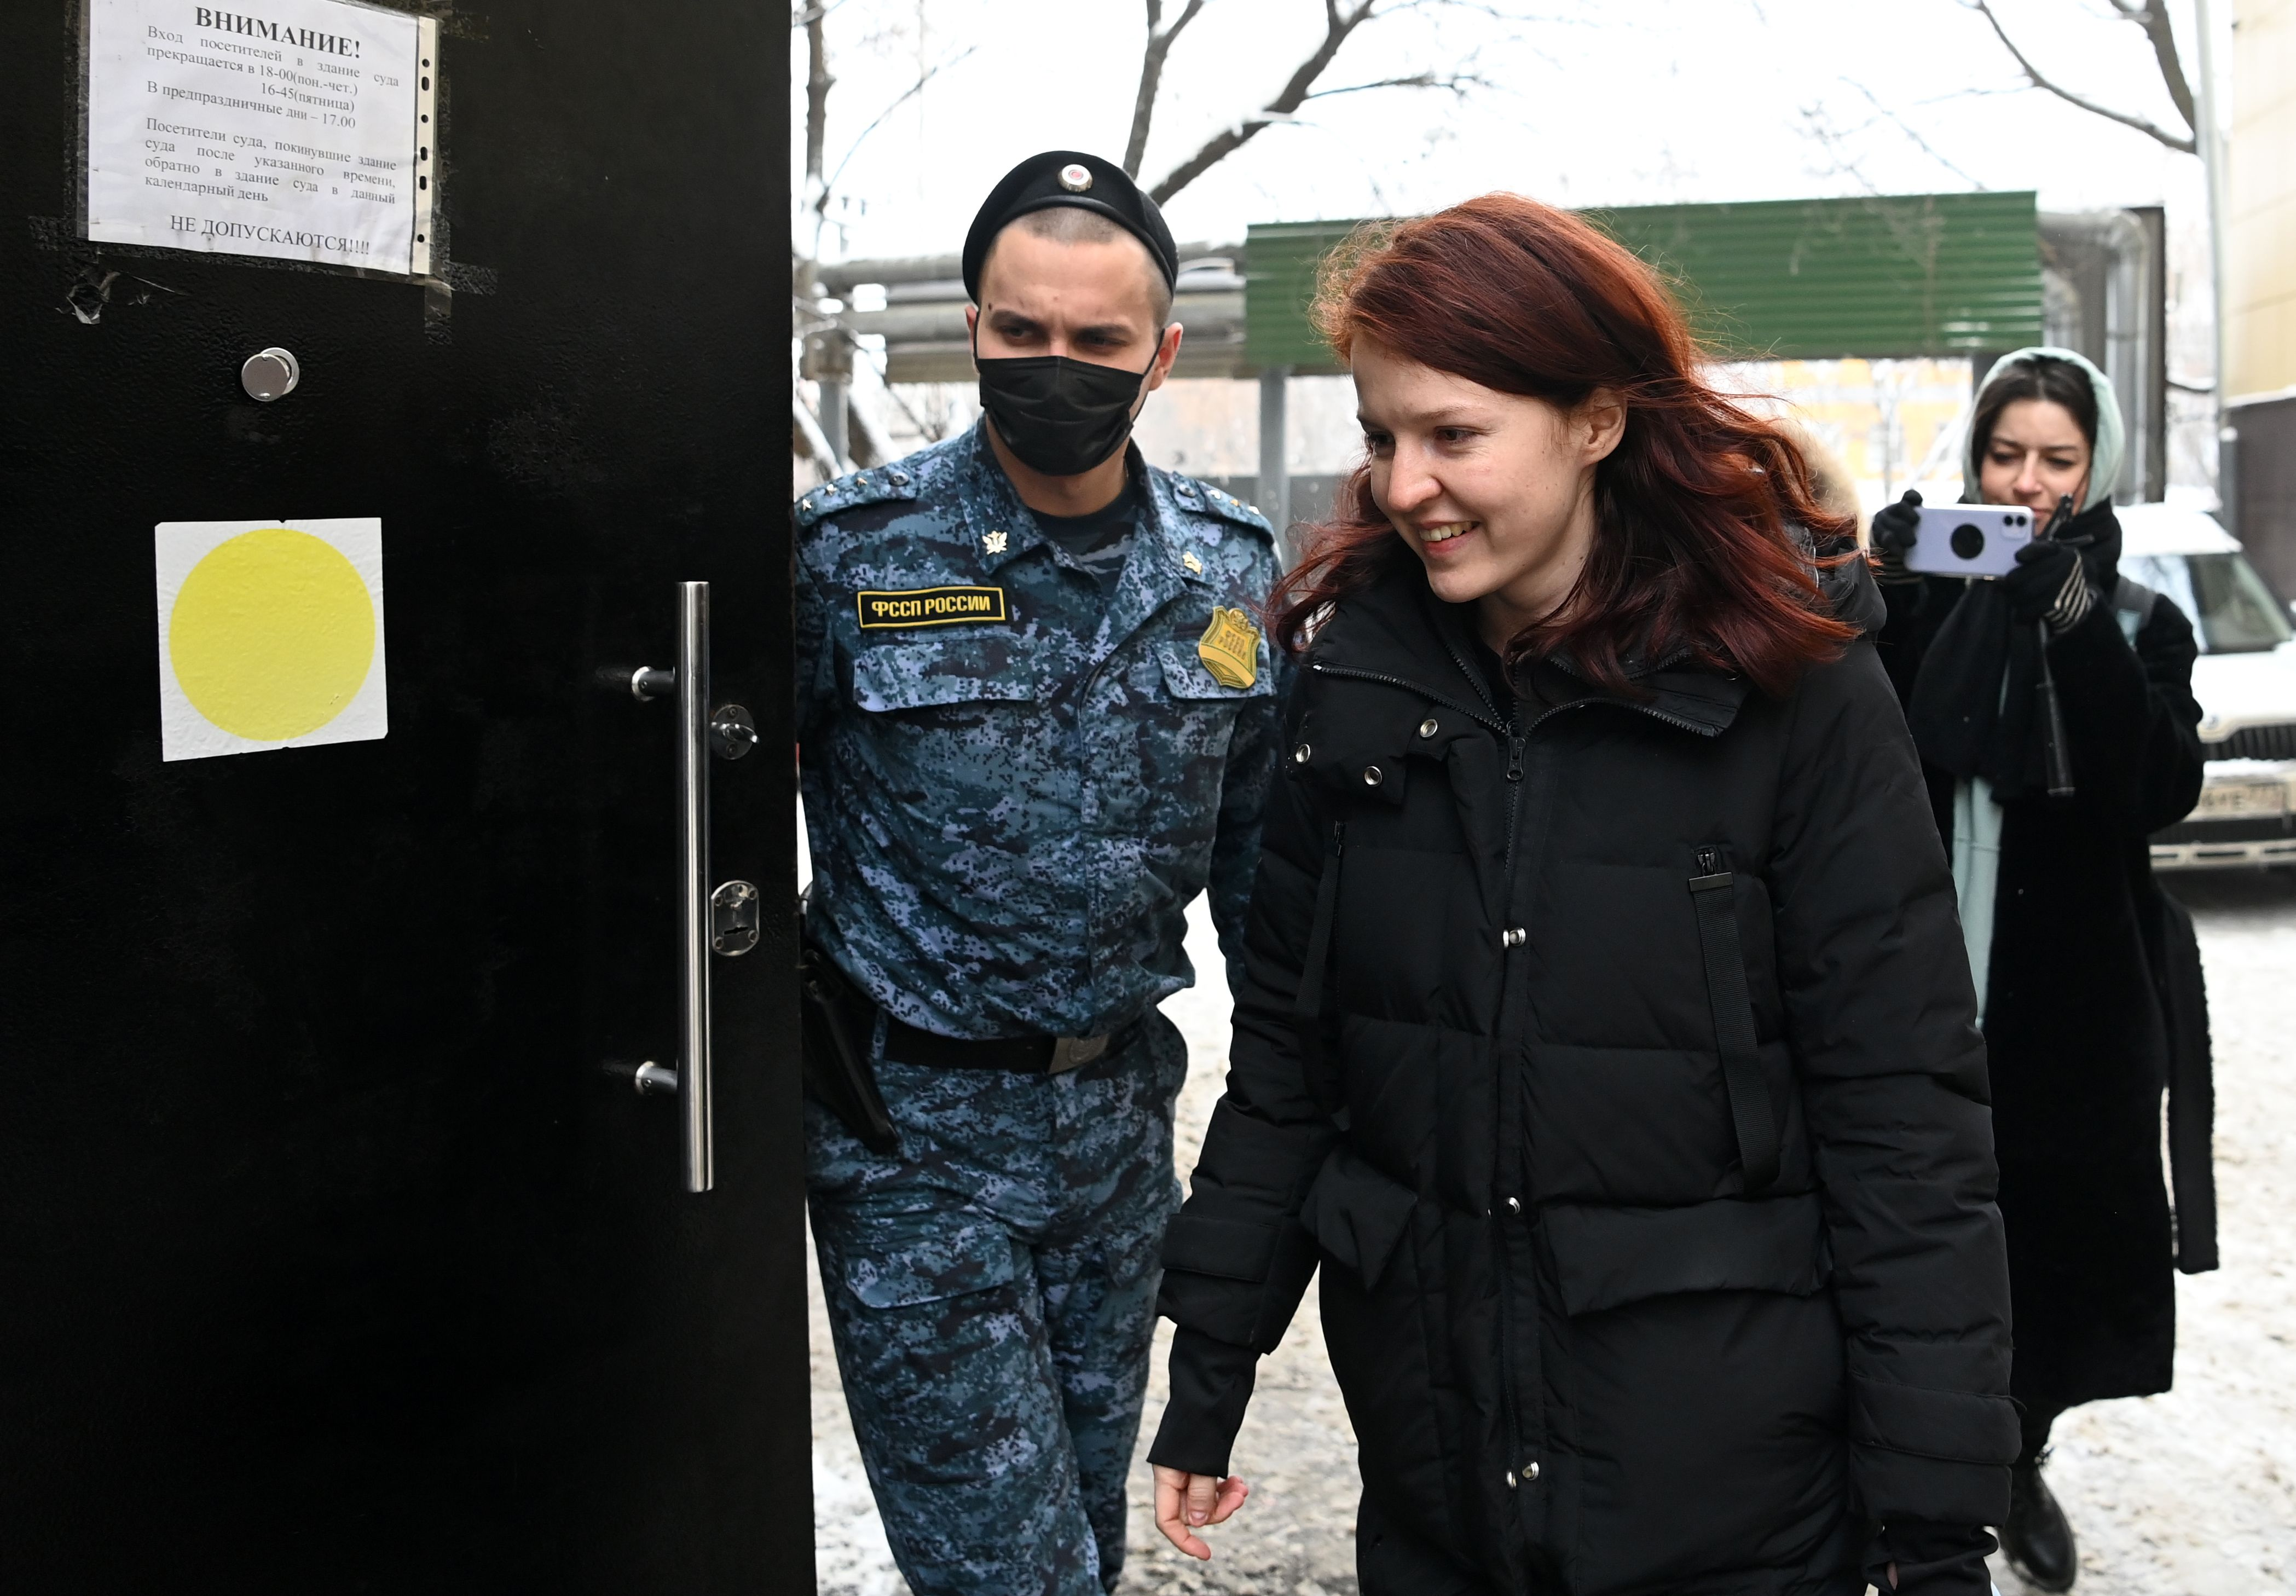 Russian opposition leader Alexei Navalny's spokeswoman Kira Yarmysh enters the Savyolovsky district court prior to a hearing into her case in Moscow. (Photo by KIRILL KUDRYAVTSEV/AFP via Getty Images)